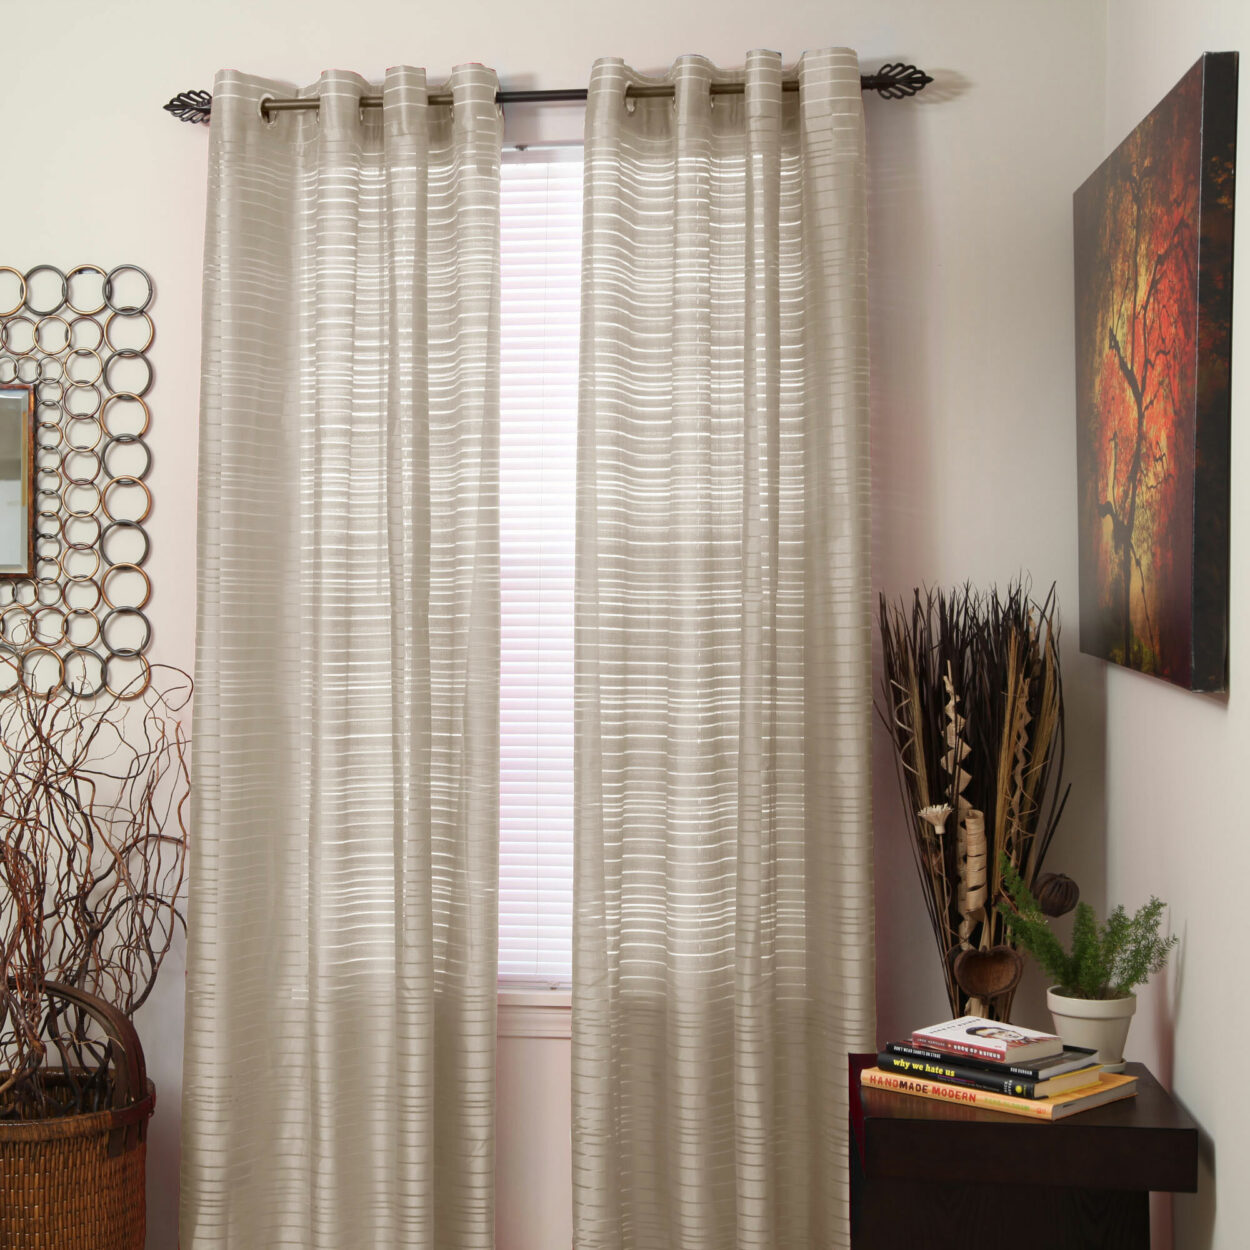 How to Hang Grommet Curtains With Sheers